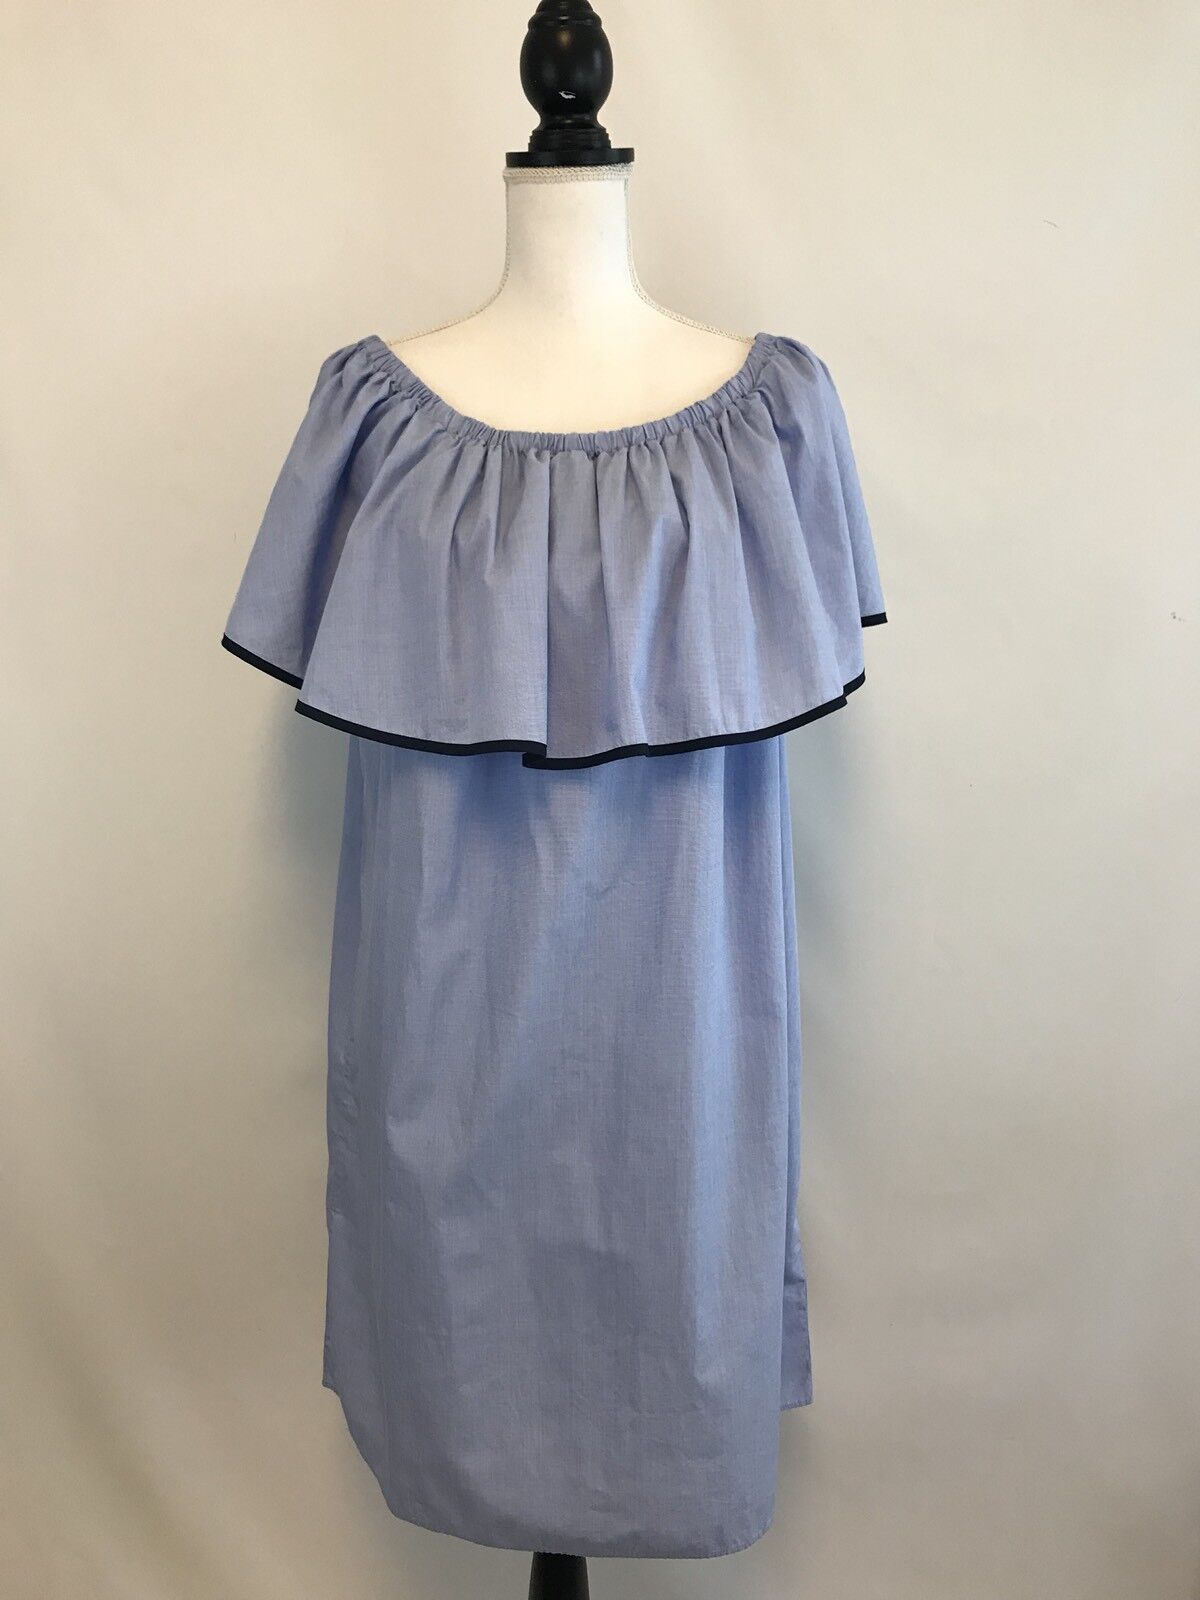 NEW J.CREW TIPPED OFF-THE-SHOULDER DRESS IN END-ON-END COTTON Blau SZ L G0263